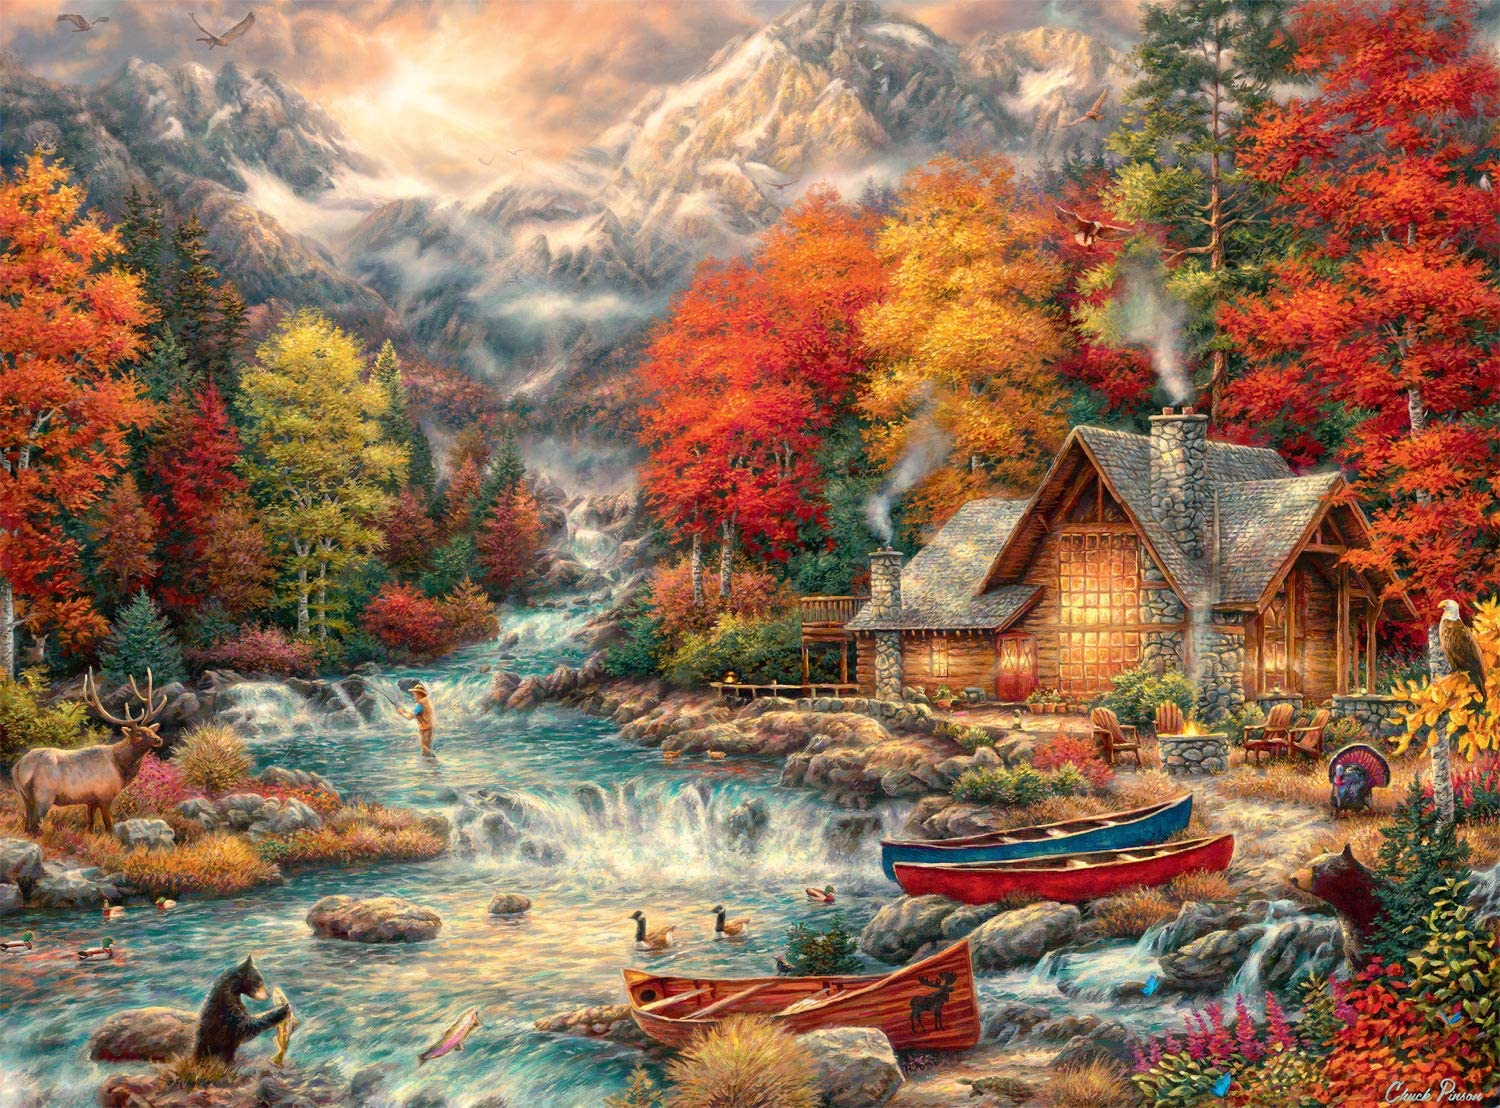 Buffalo Games - Treasures of The Great Outdoors - 1000 Piece Jigsaw Puzzle with Hidden Images